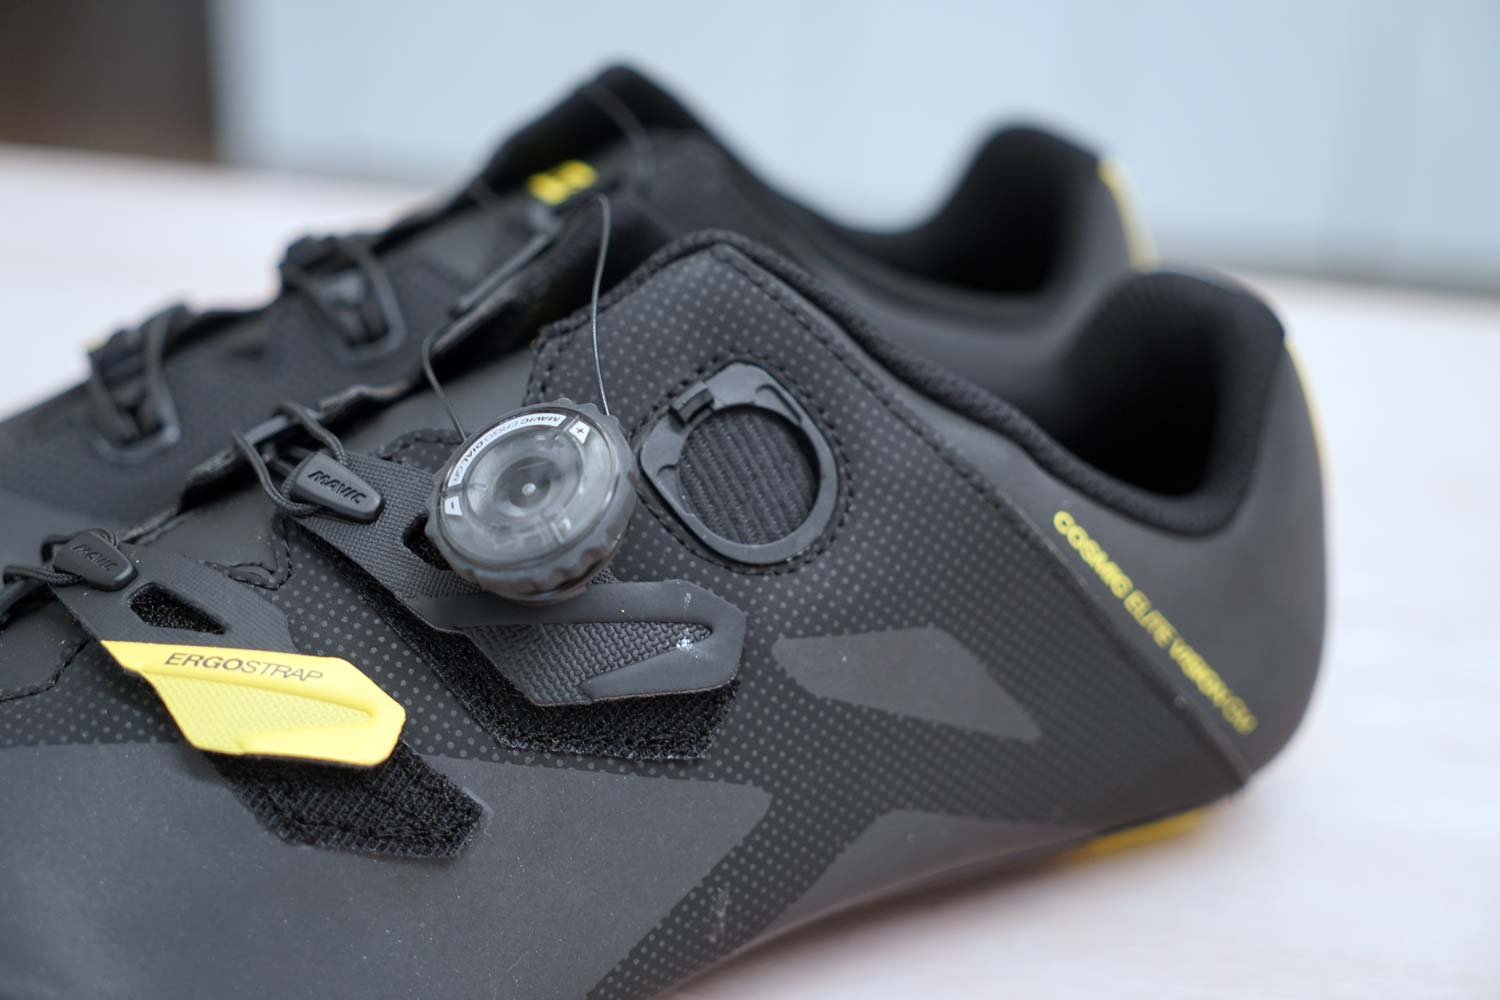 c7d5f0b34f8 ... below are a few more photos of the Cosmic Elite Vision shoes – the ones  with a retail price that's just a fraction of the Ultimate offering by Mavic .